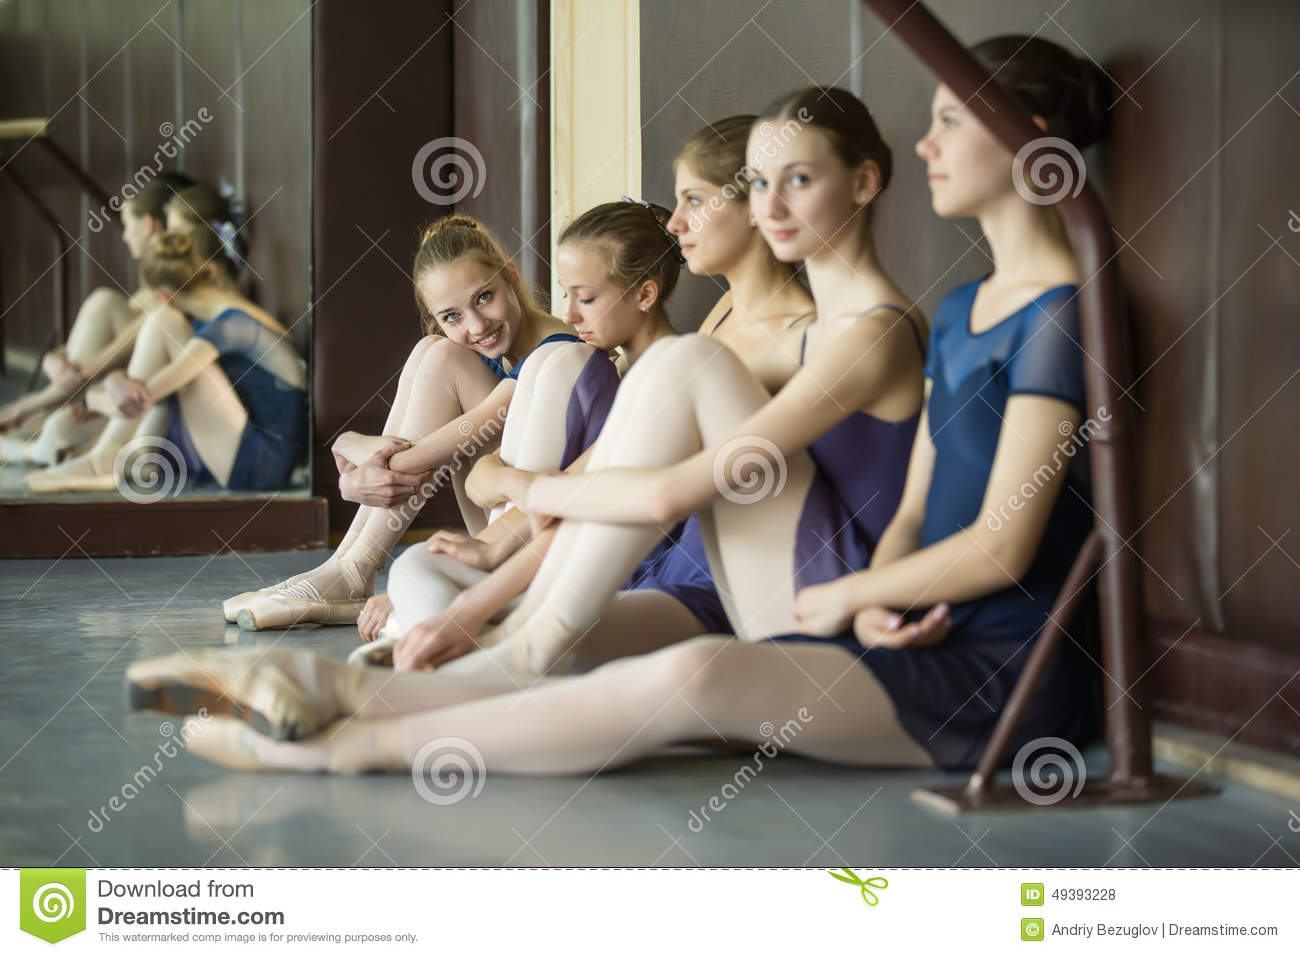 Five young dancers in the same dance costumes resting for Dance where you sit on the floor